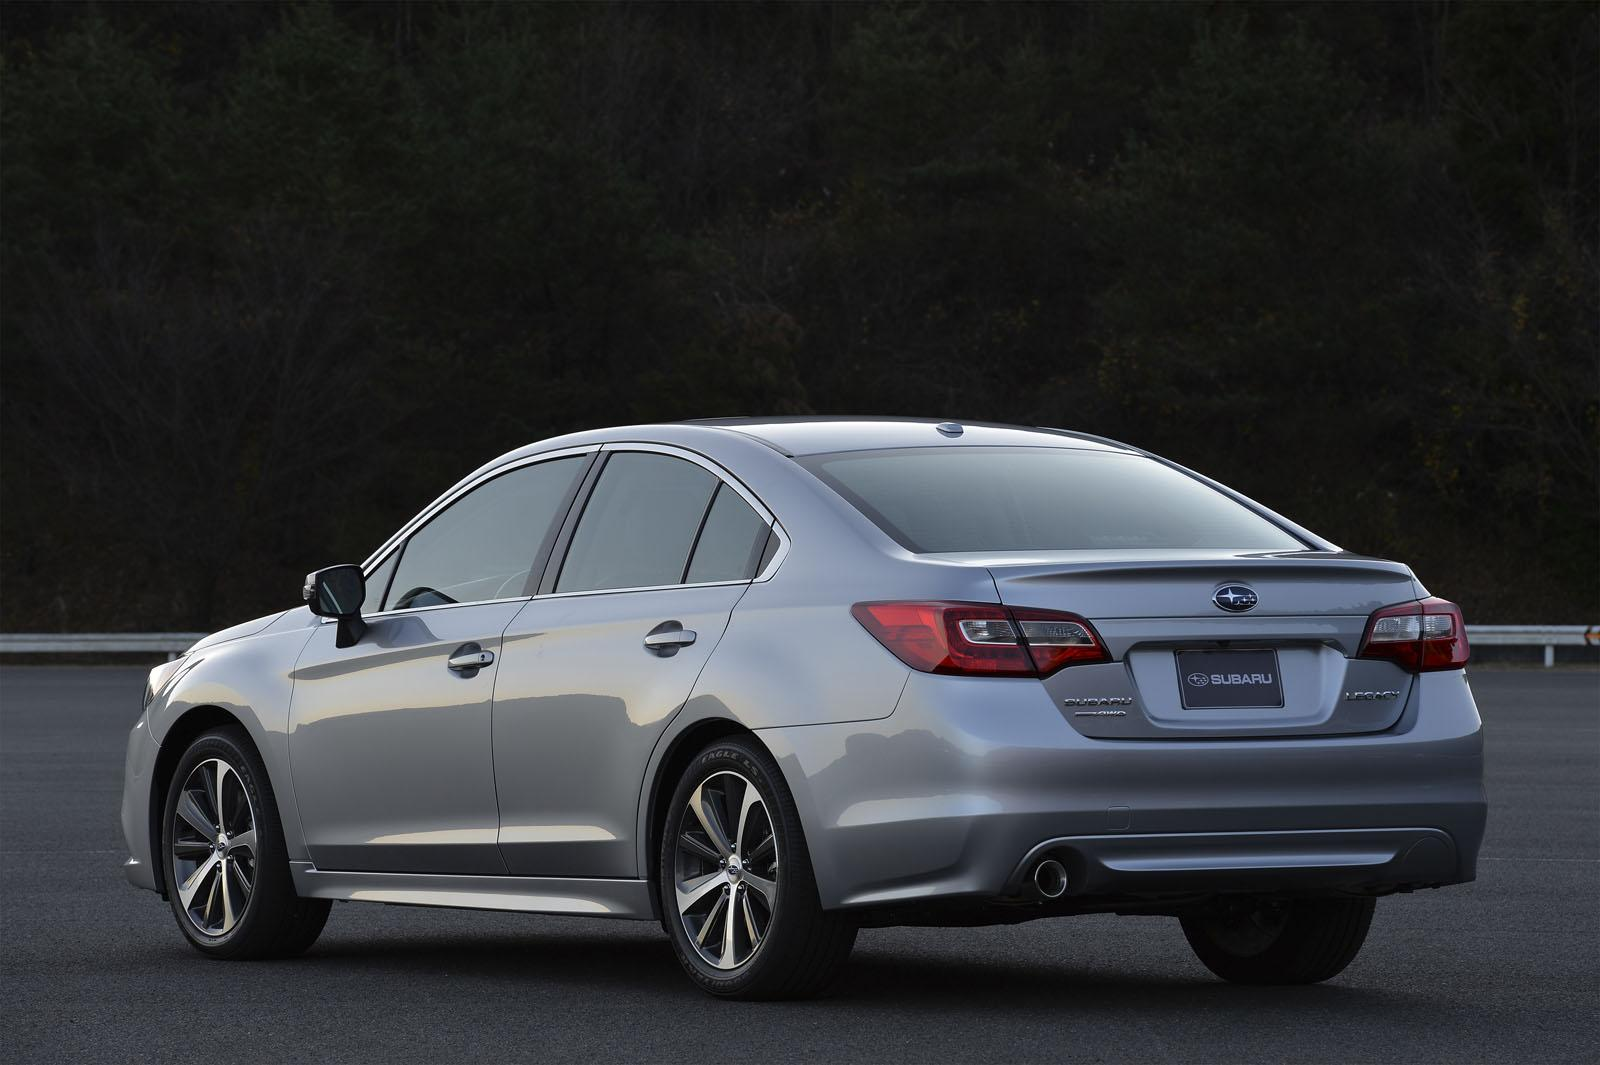 2015 Subaru Legacy debuts in Chicago – full details